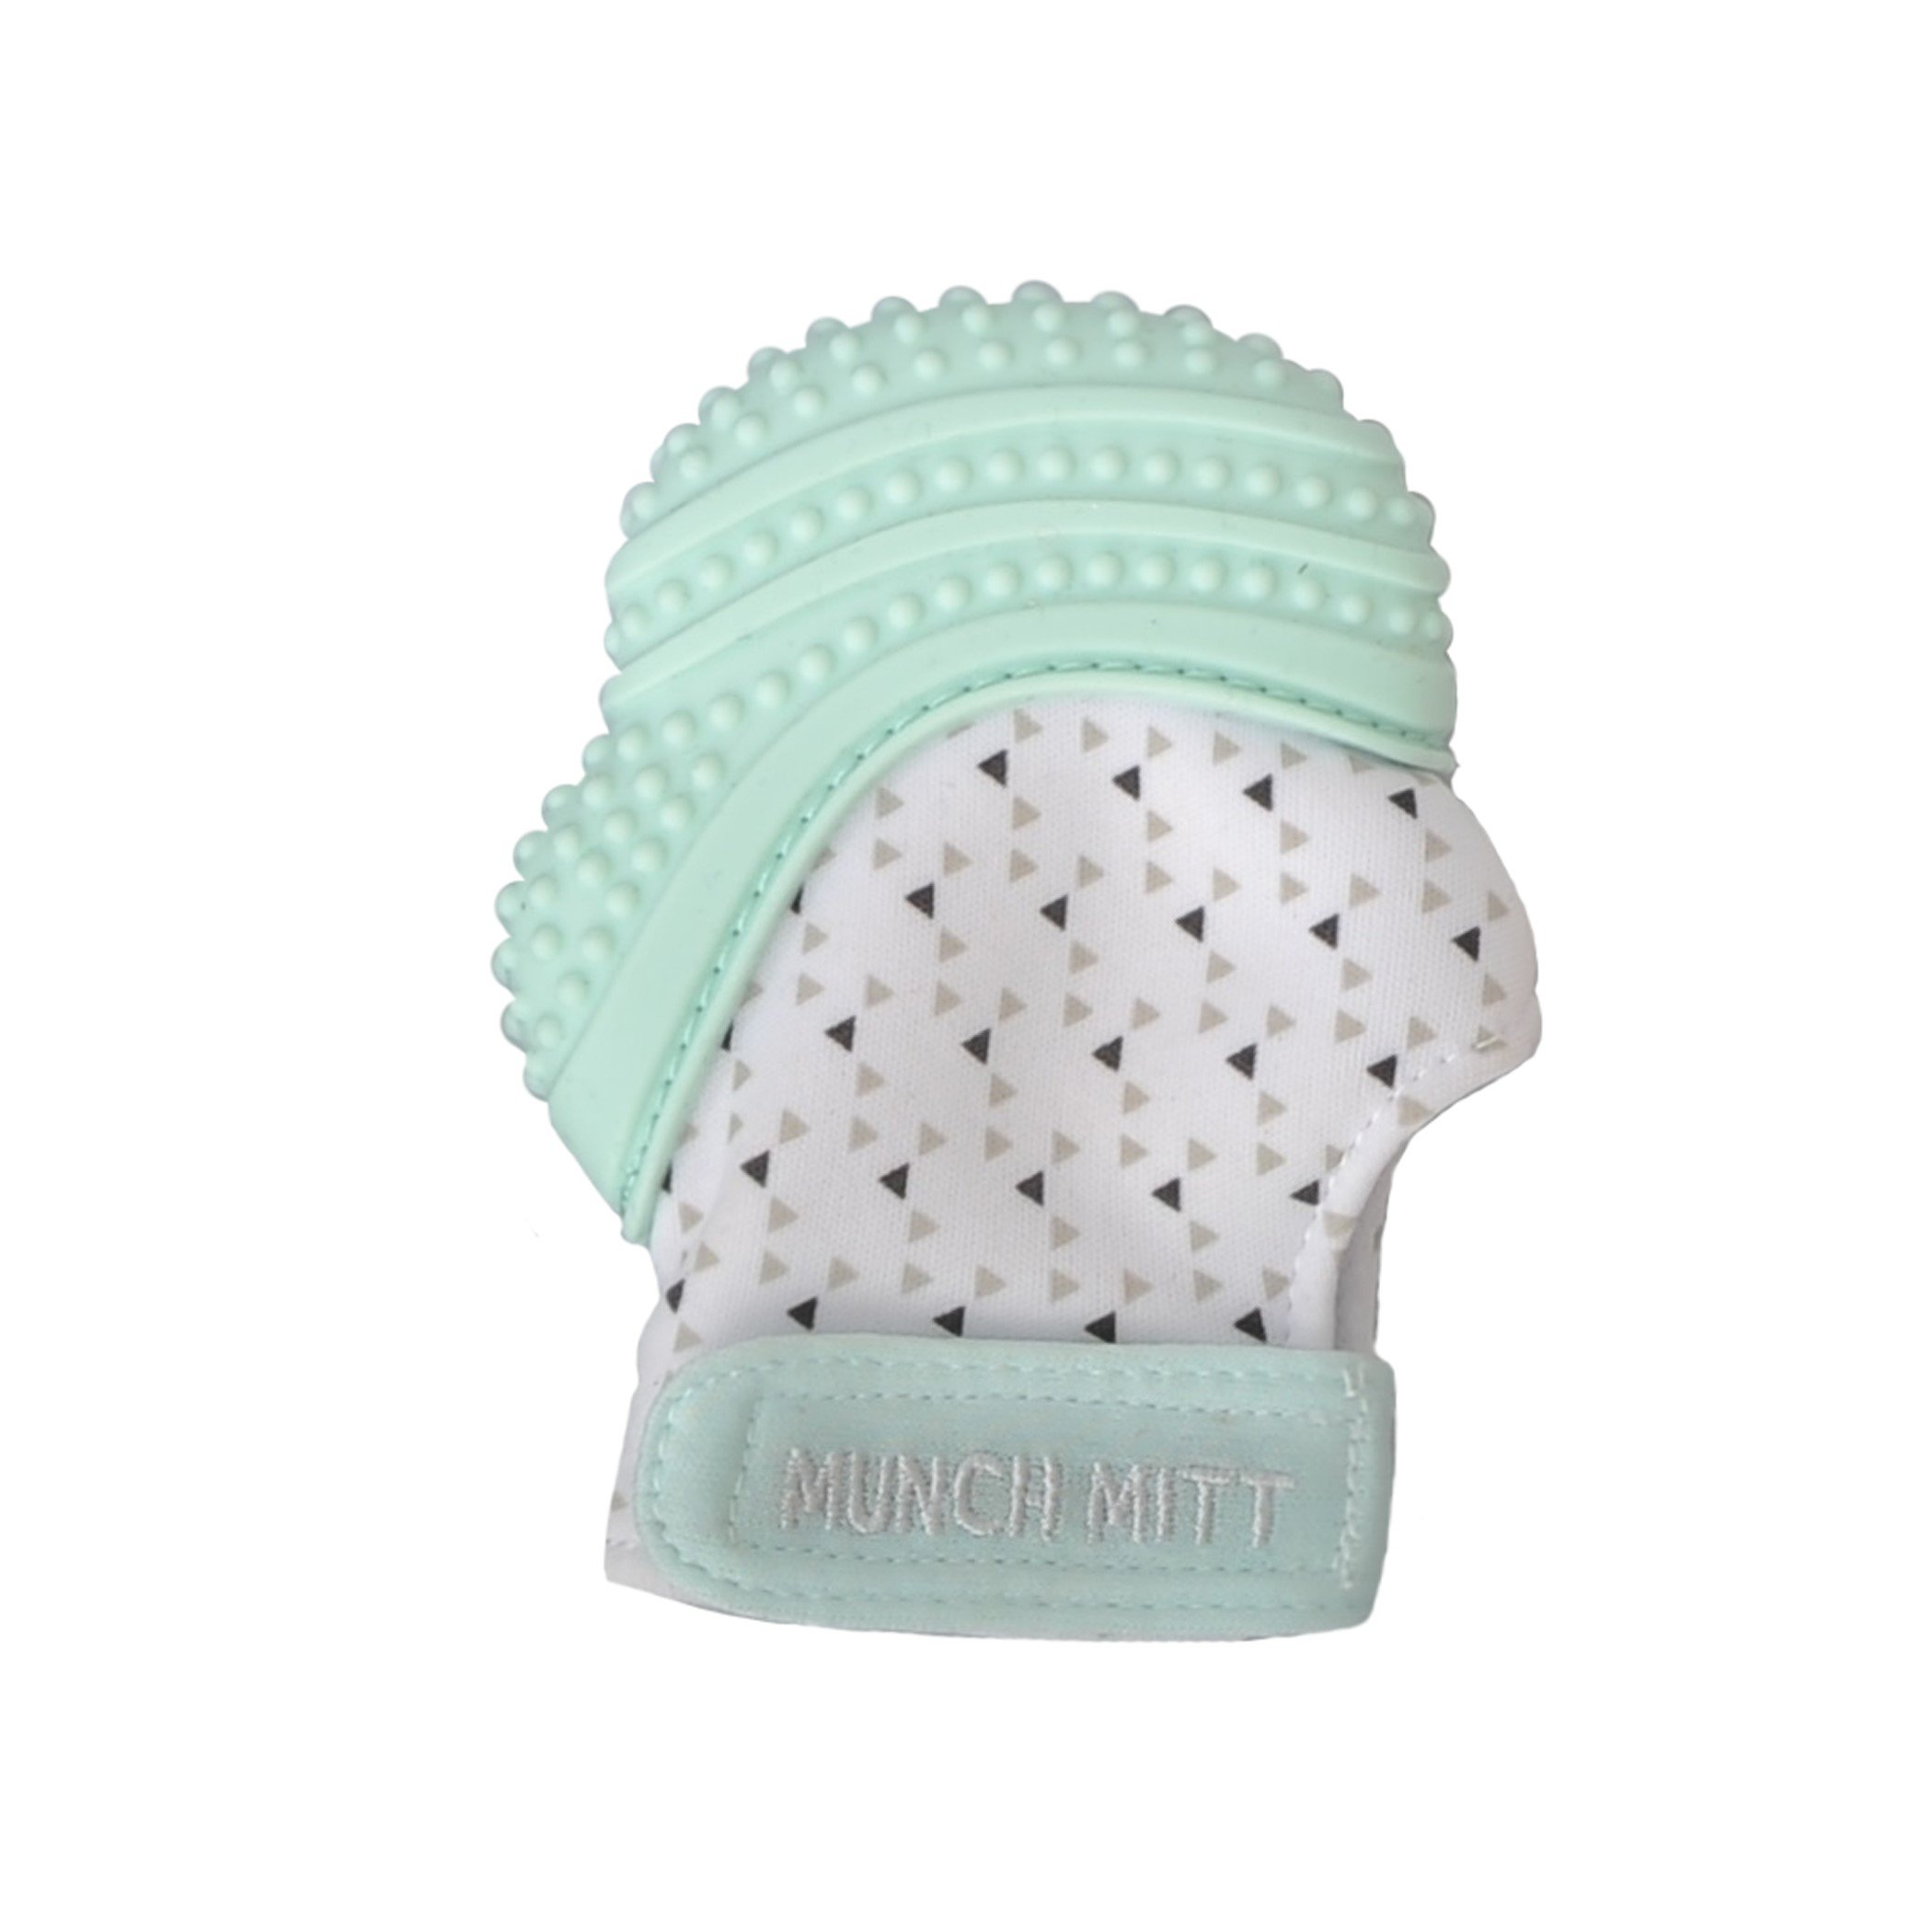 Munch Mitt Teething Mitten - The ORIGINAL Mom-Invented Silicone Teether Mitten with Travel Bag – Ideal Teething Toys for Baby Shower Gift - Mint Green Triangles